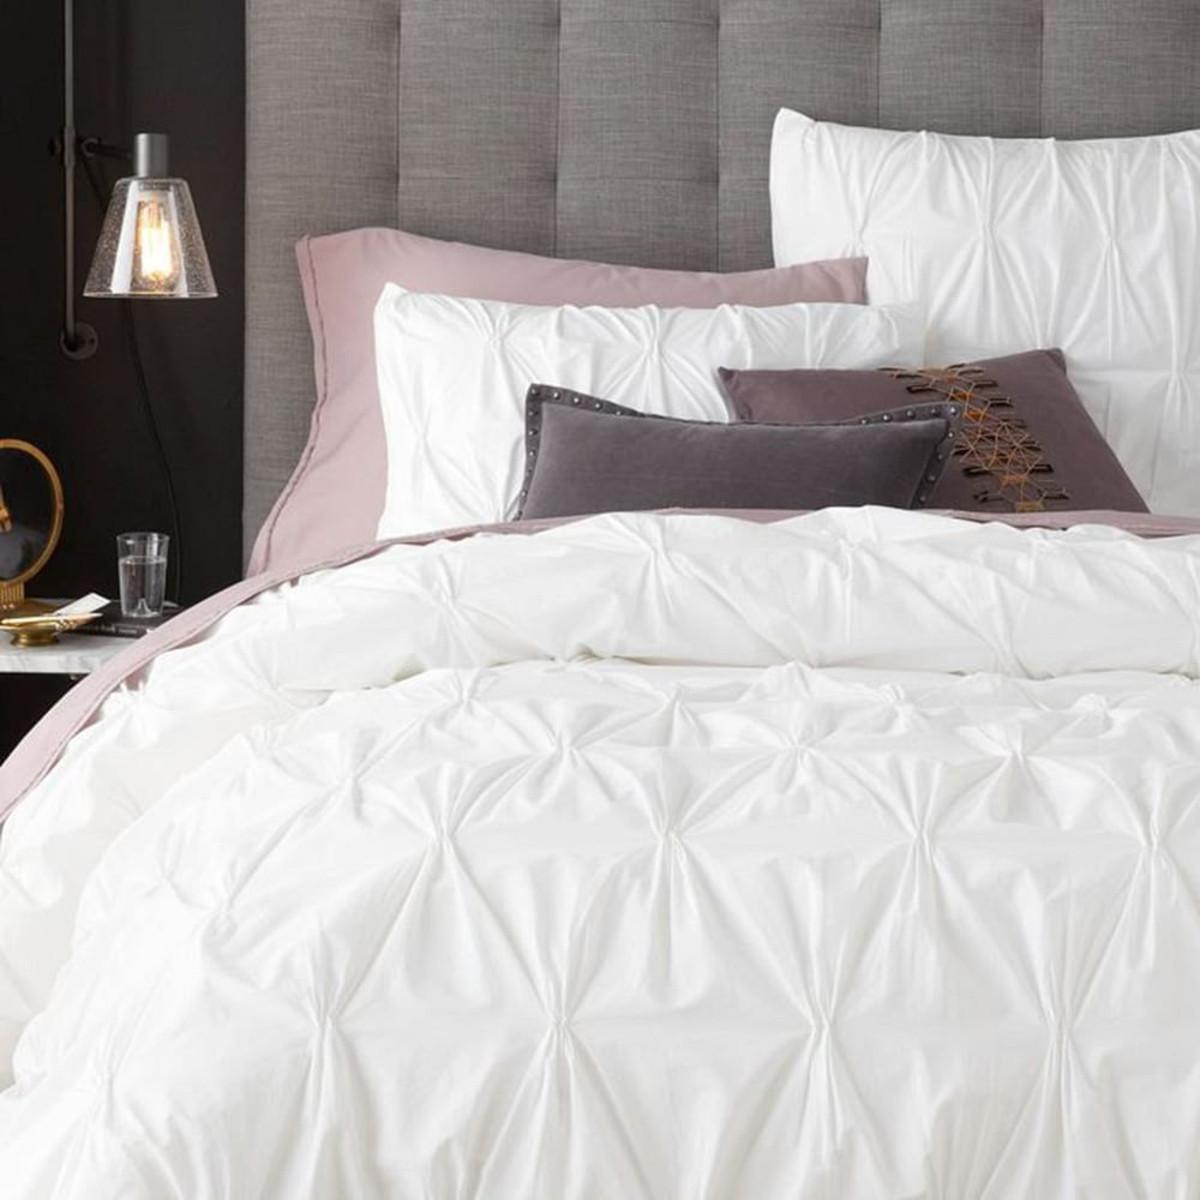 Organic Cotton Pintuck Duvet Cover Pillowcases West Elm